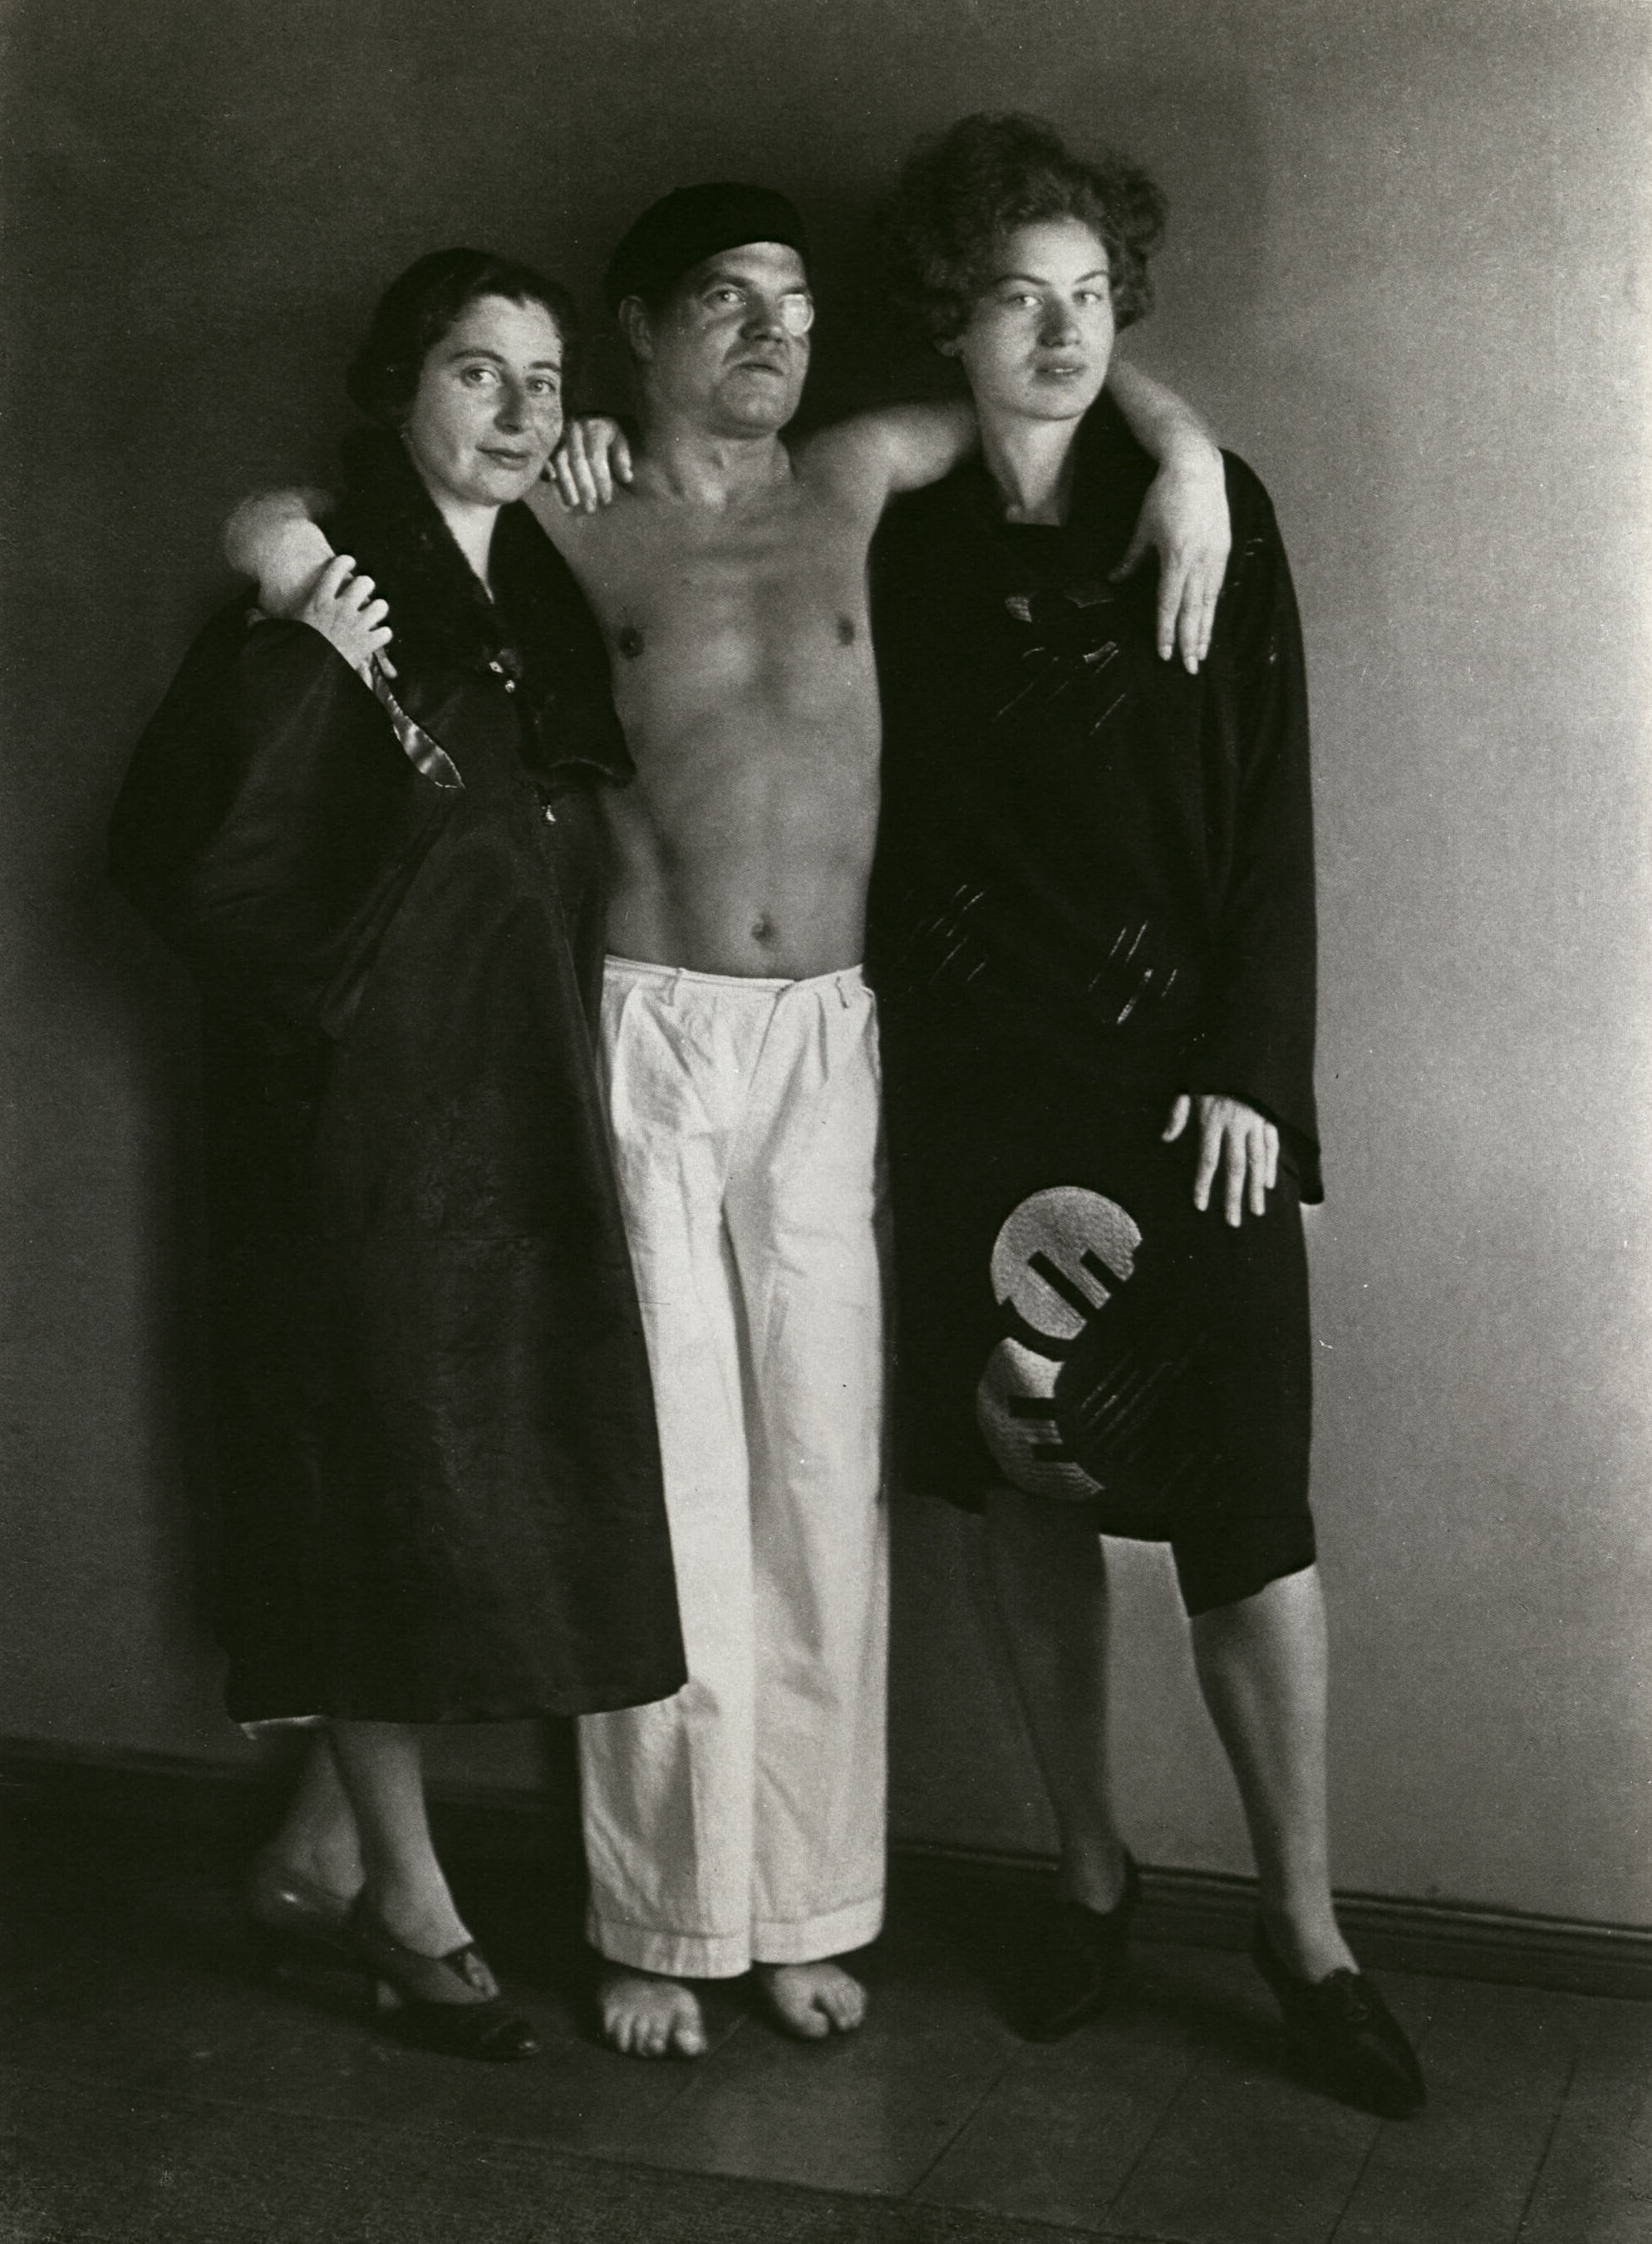 The Dadaist Raoul Hausmann * [with Hedwig Mankiewitz and Vera Broido] 1929 photo August Sander